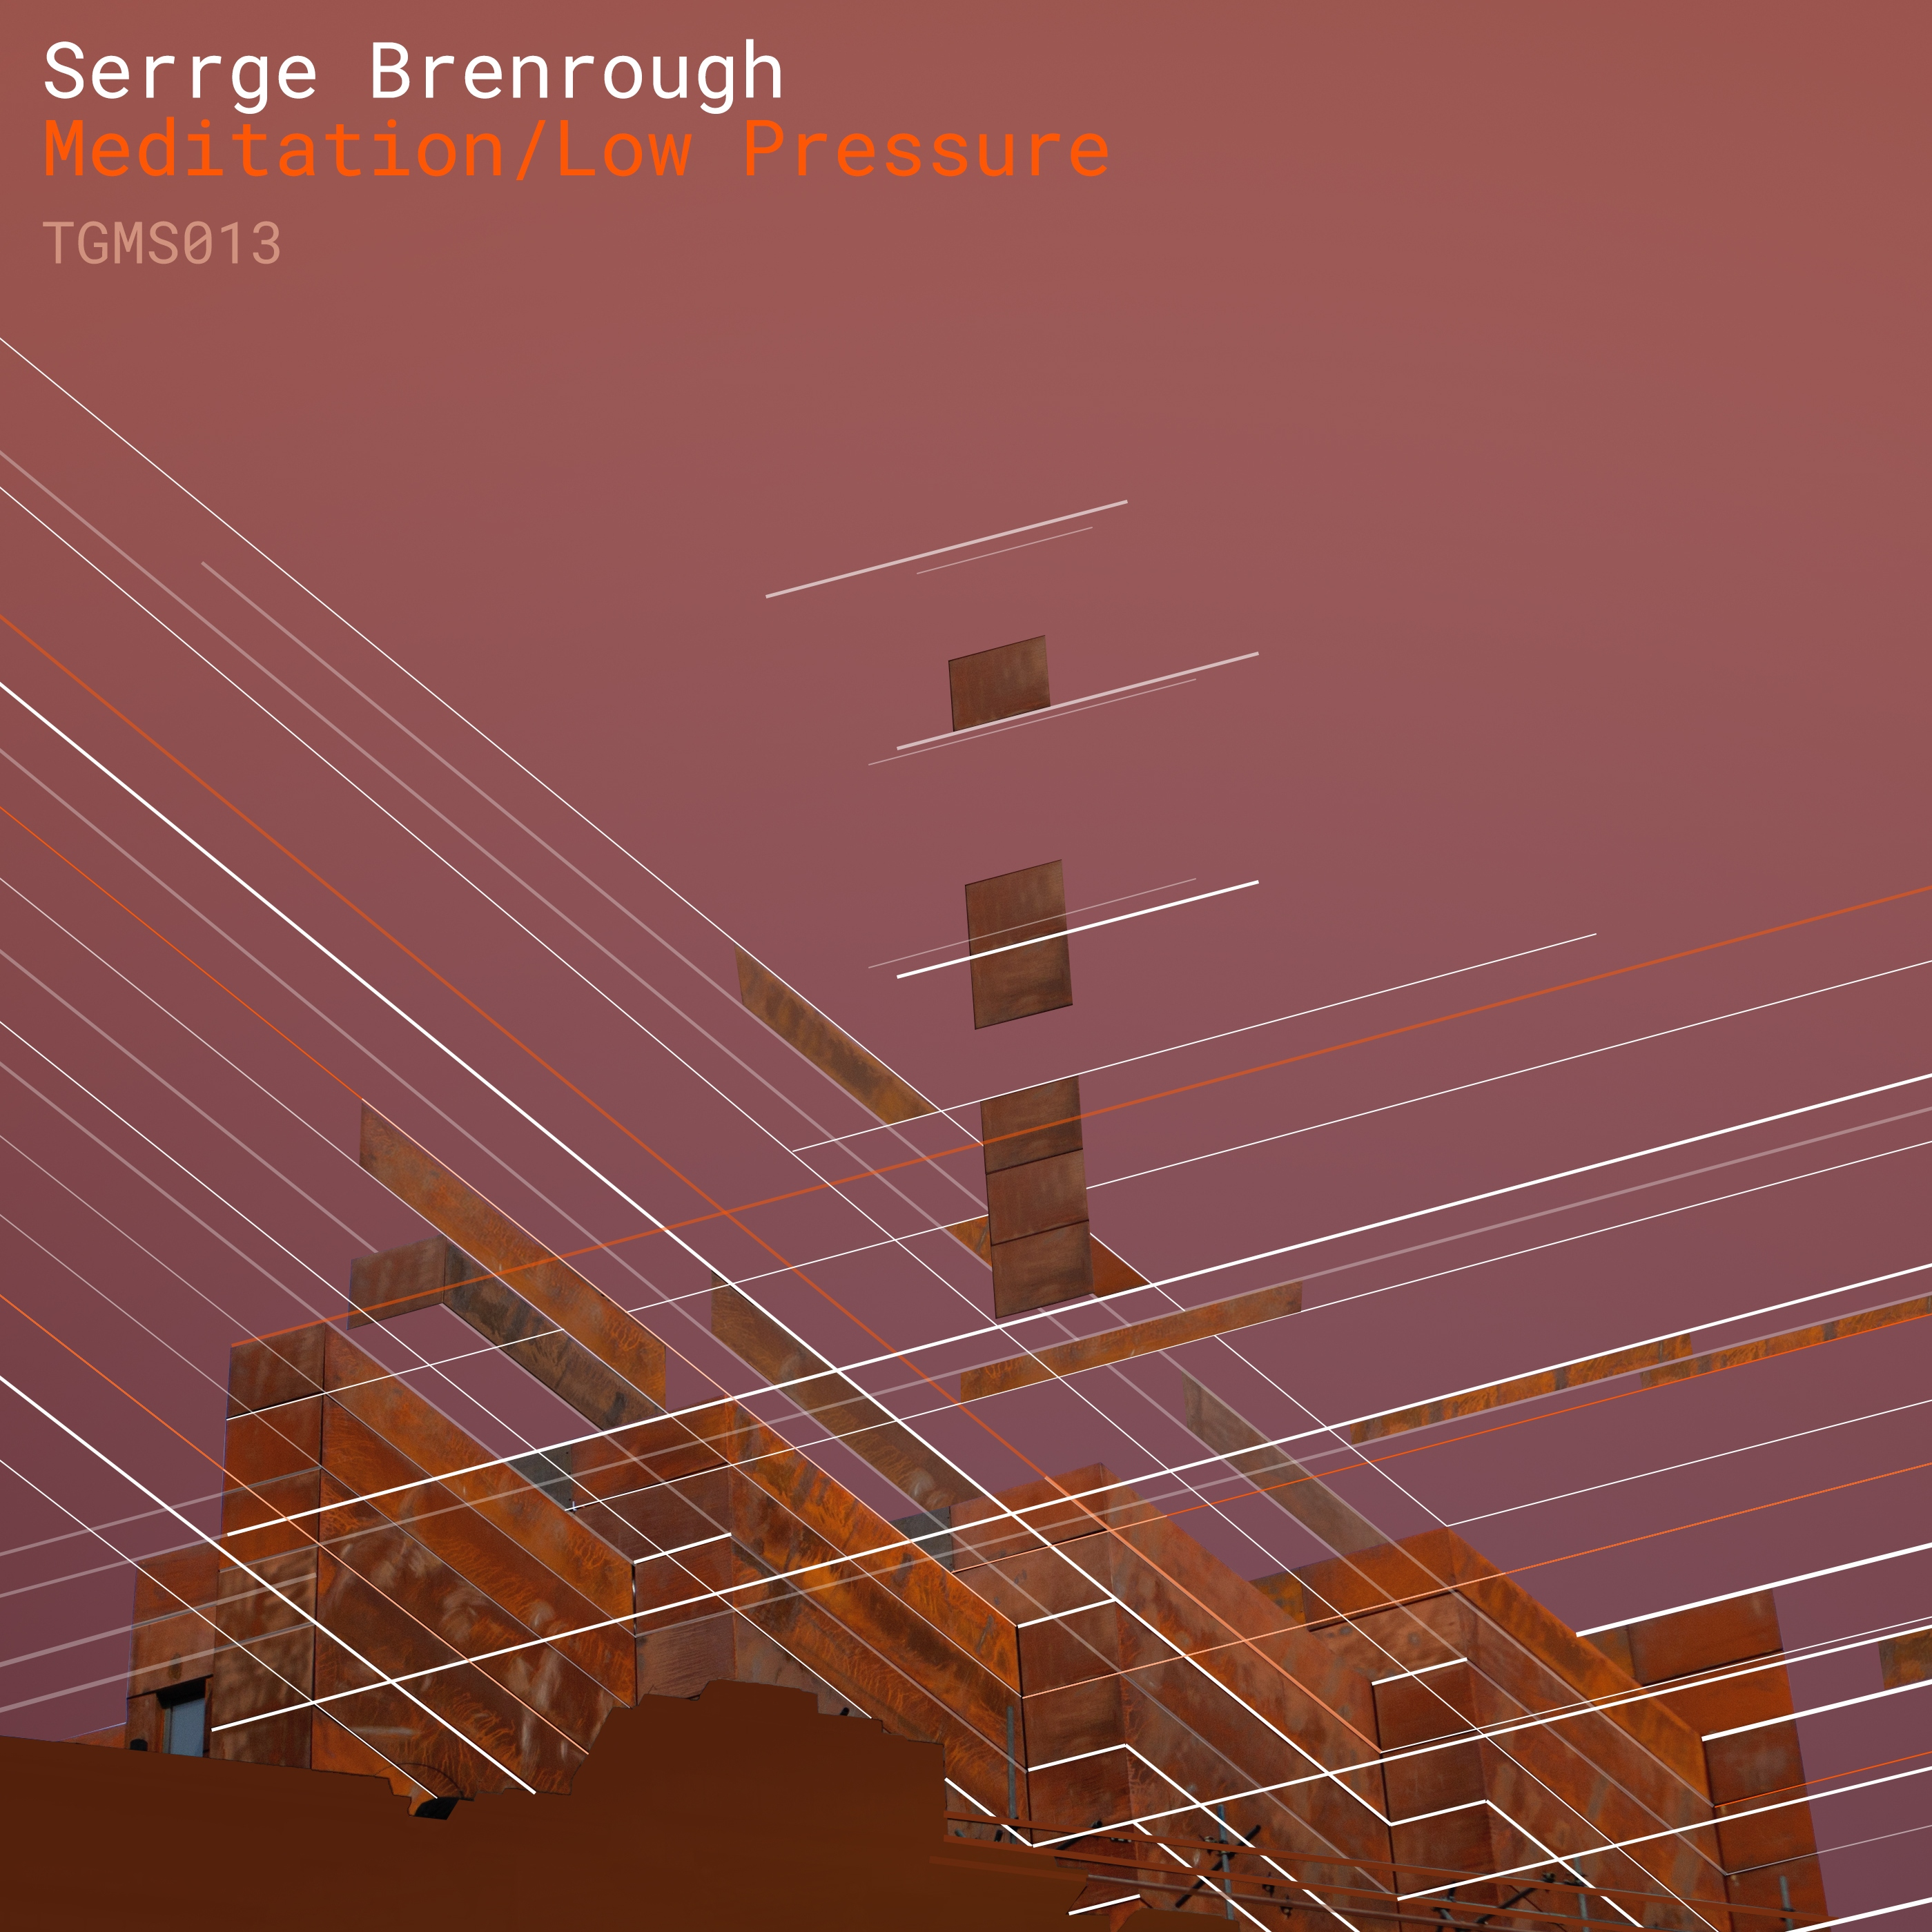 Serrge Brenrough - Meditation/Low Pressure